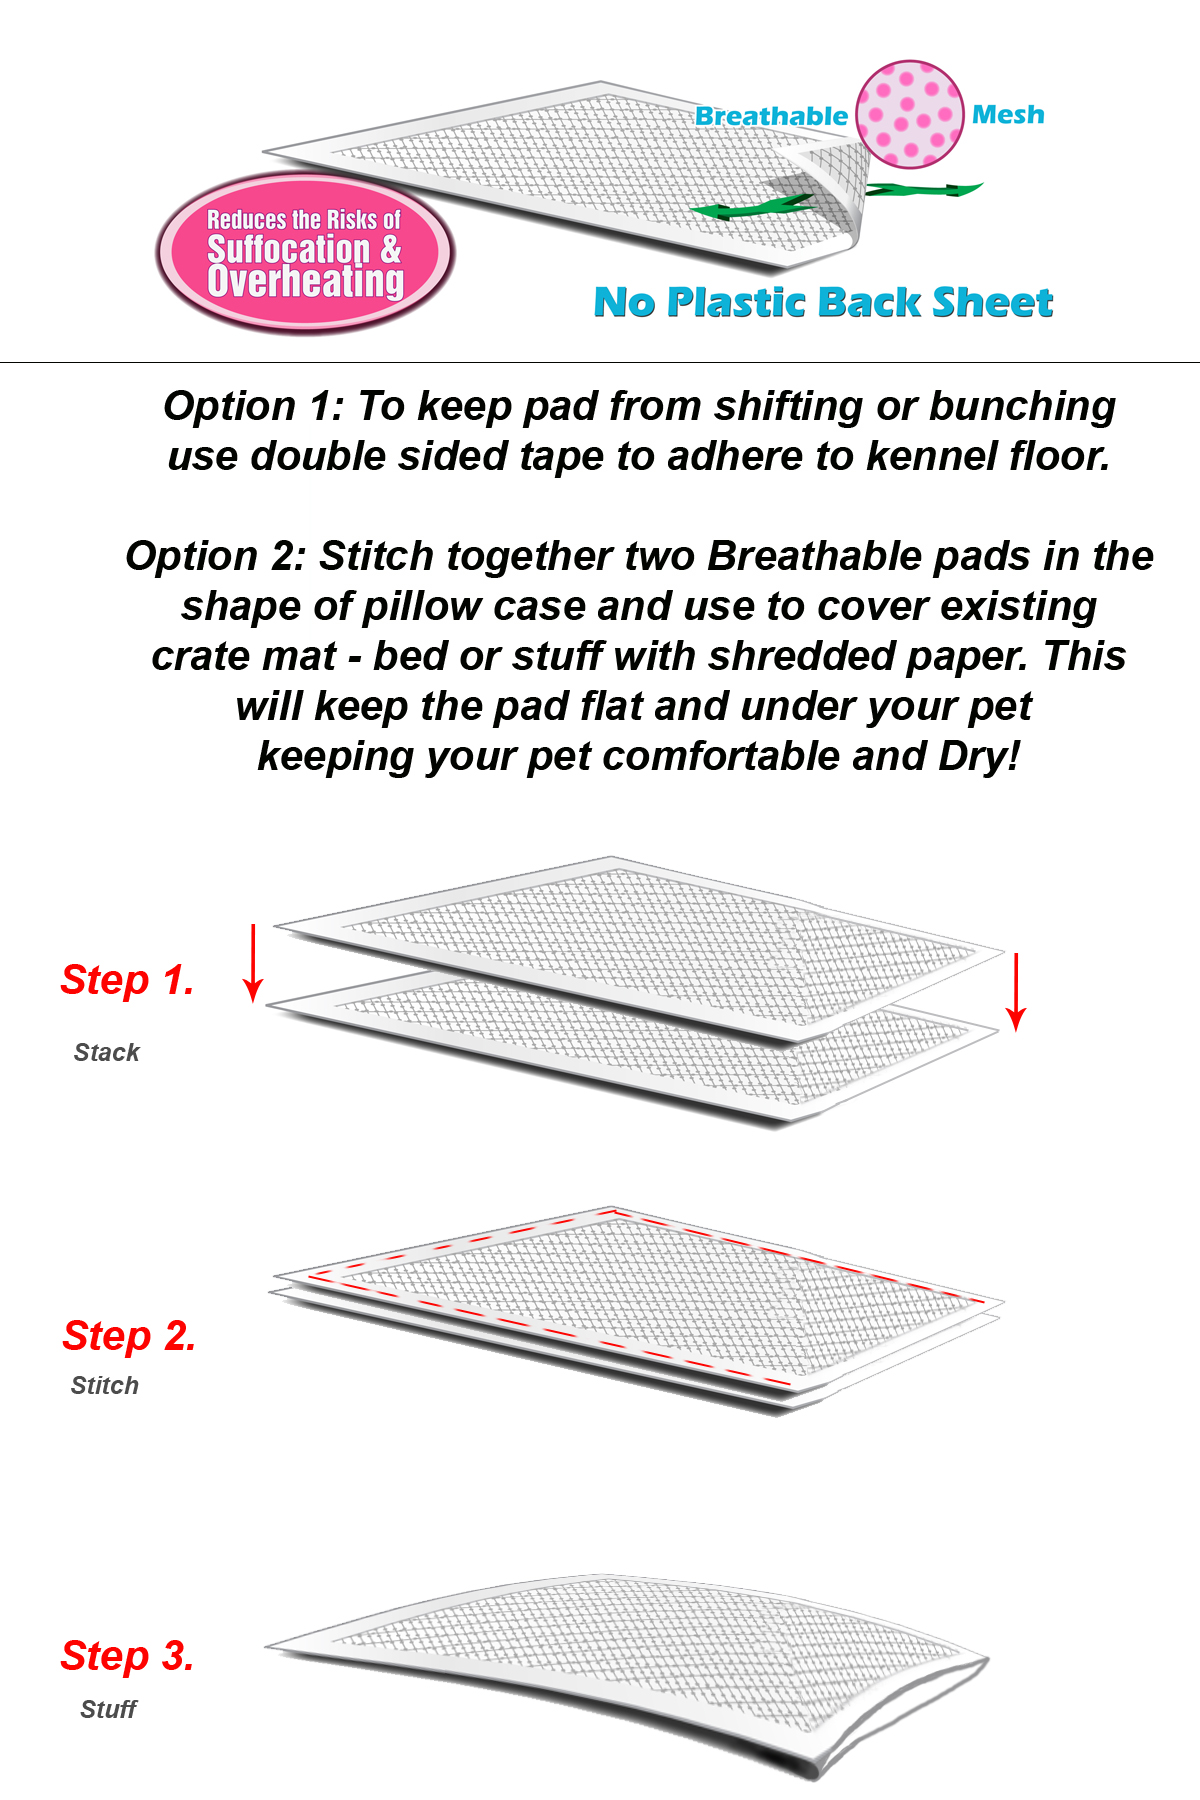 breathable-pad-tips.jpg